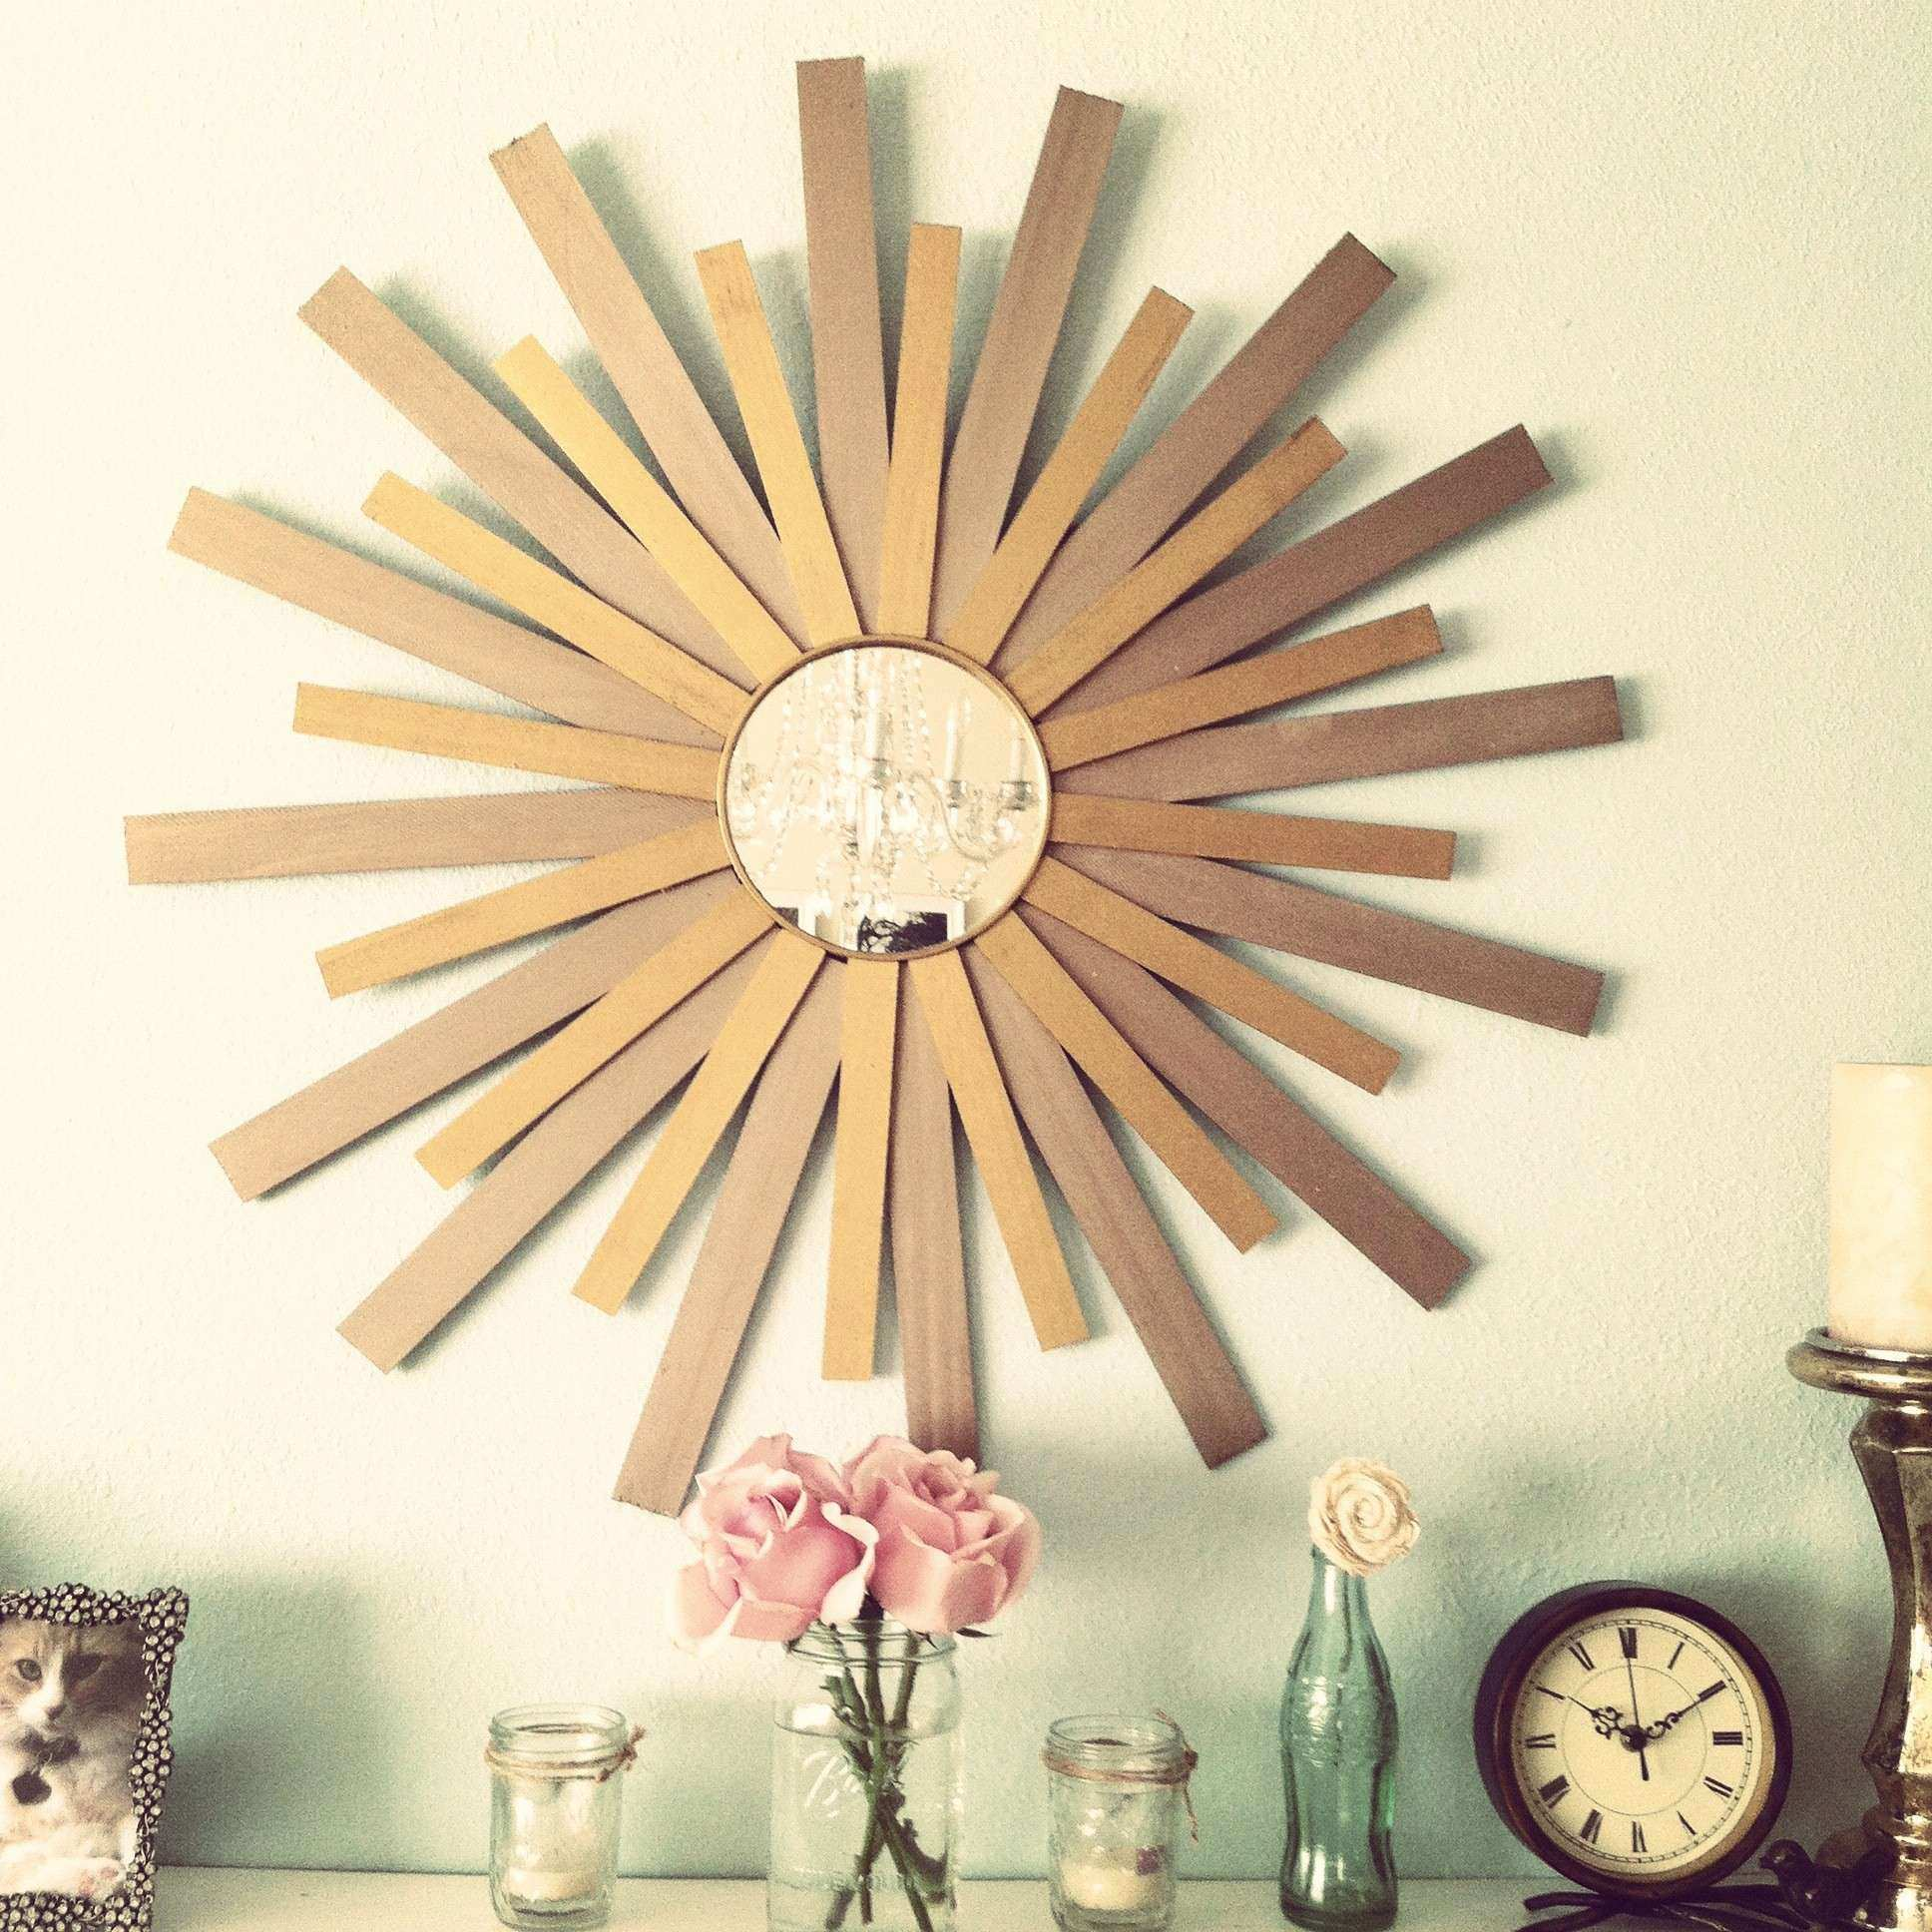 Sunburst Wall Decor New Wall Decor Minimalist Sunburst